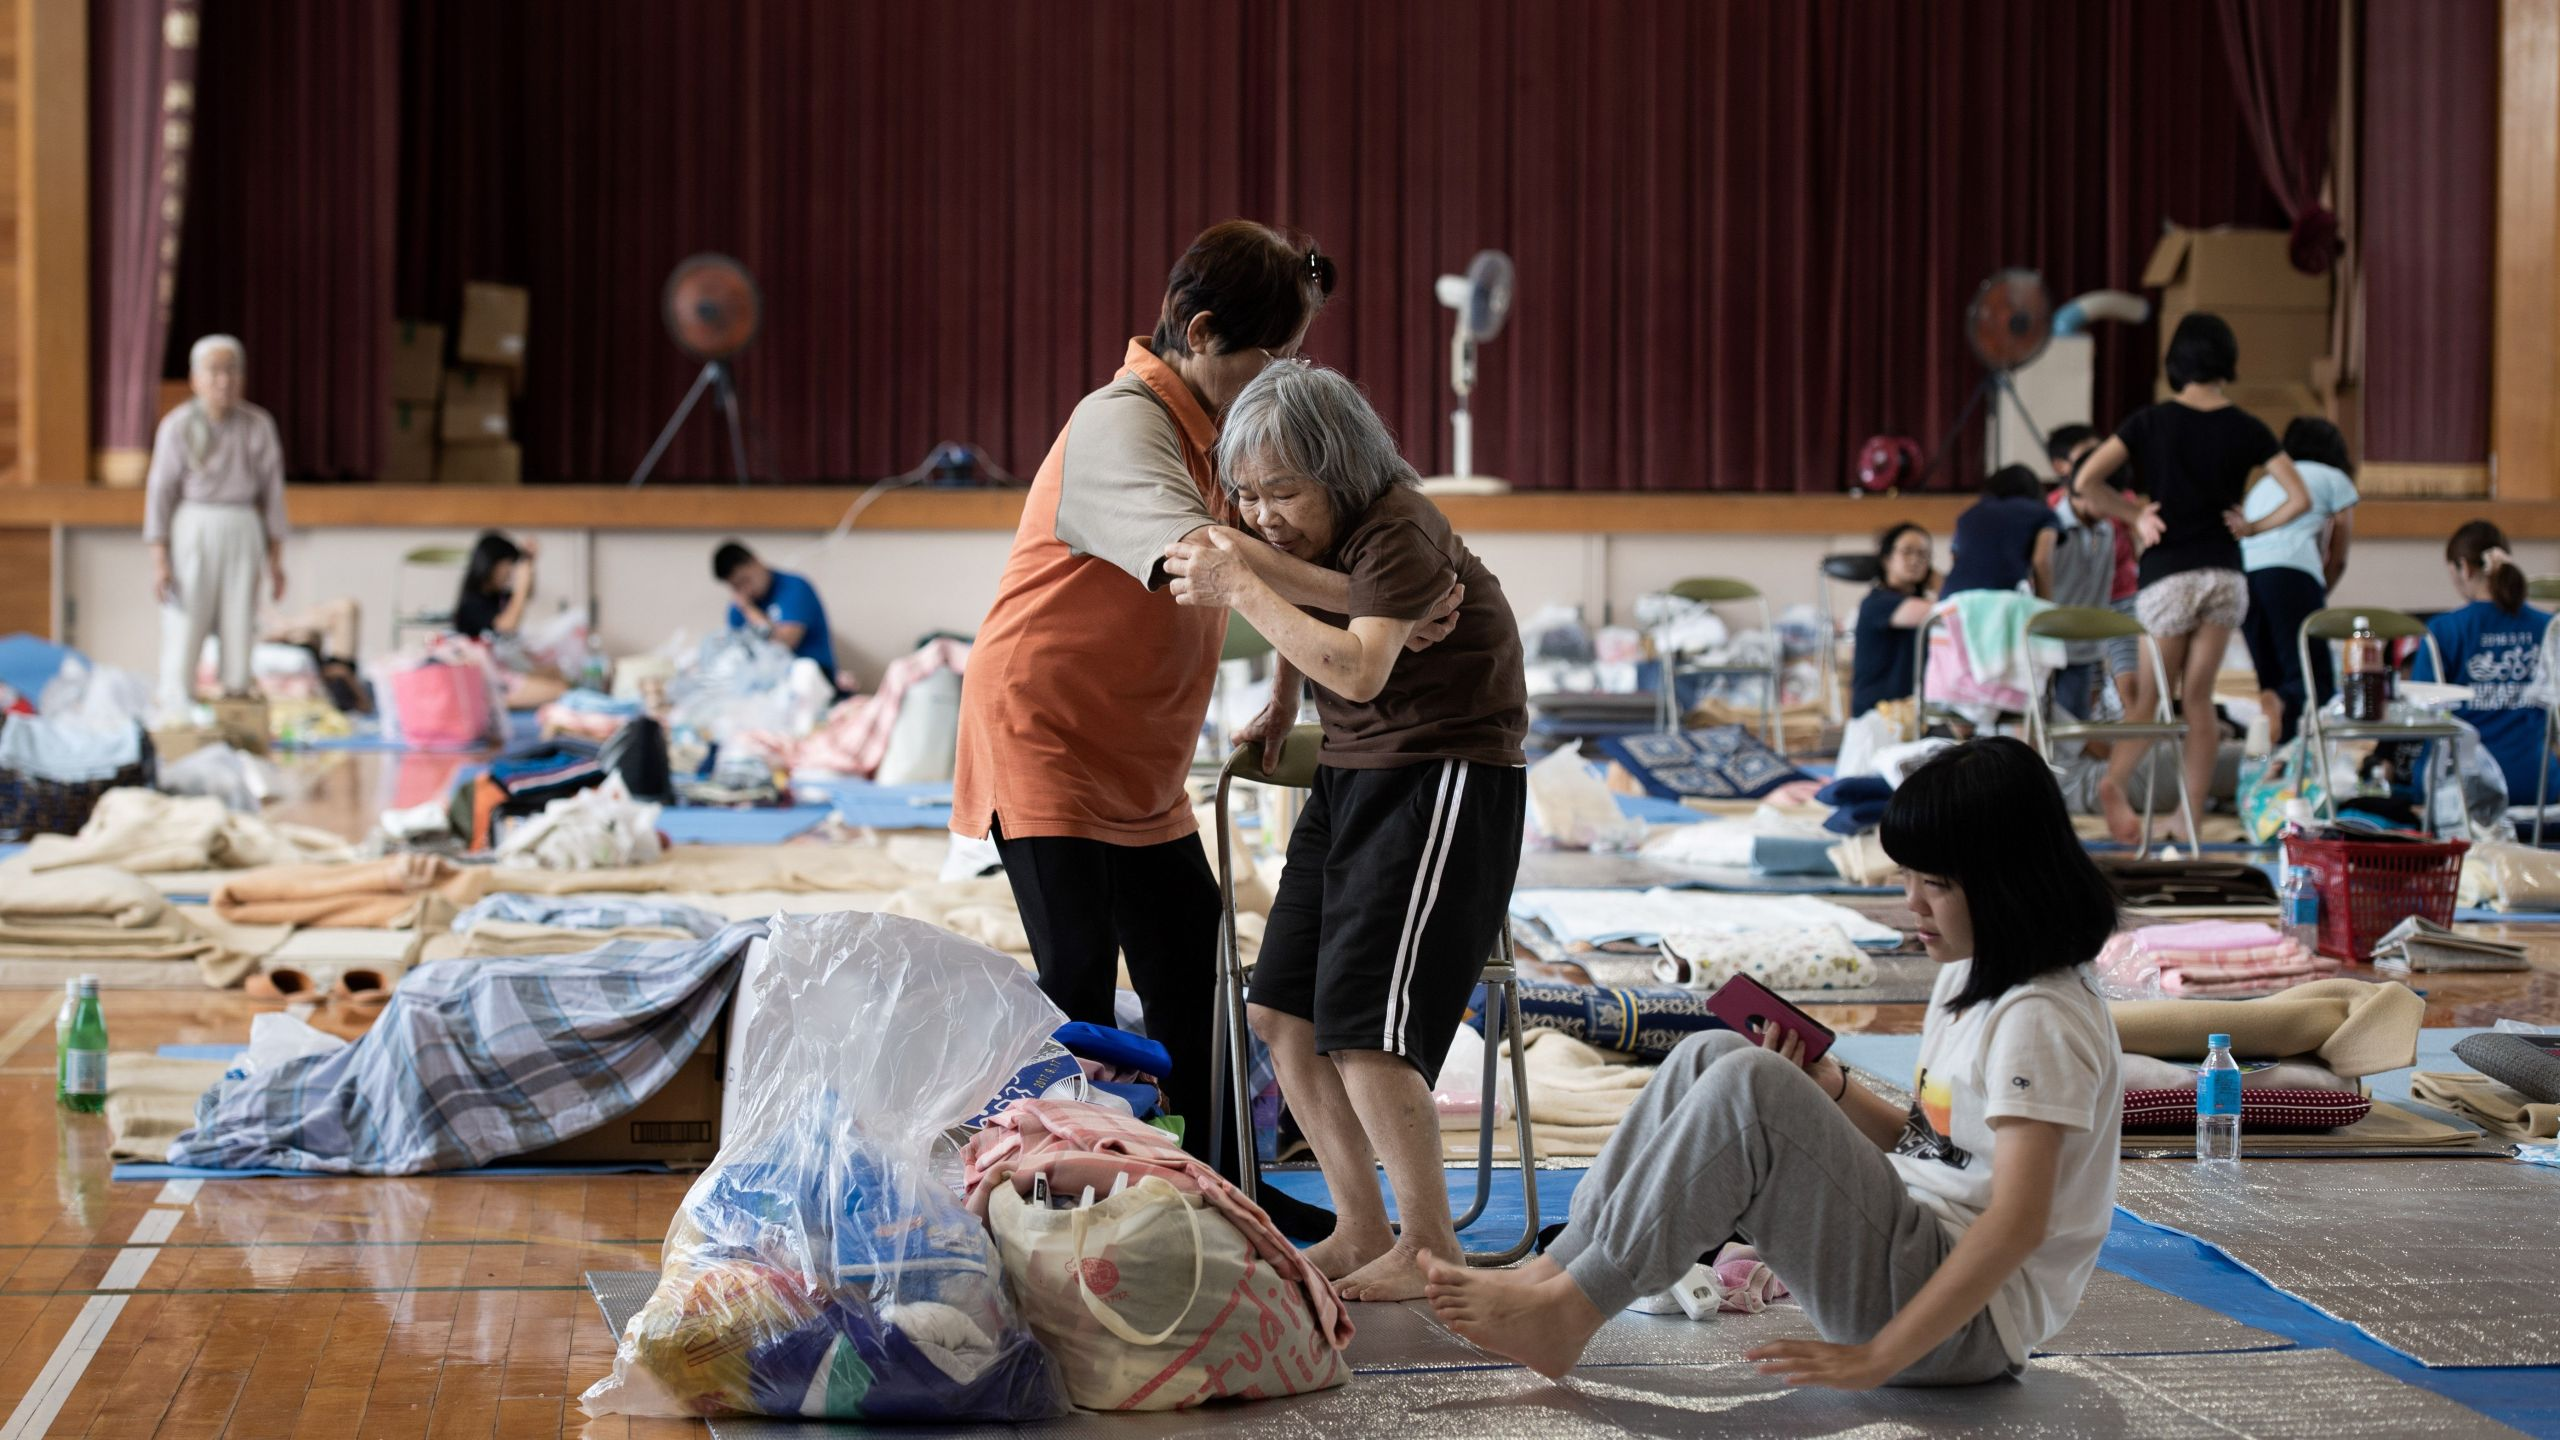 A woman is given assistance as people affected by the recent flooding in Japan rest at a makeshift shelter in Mabi, Okayama on July 11, 2018. (Credit: Martin Bureau/AFP/Getty Images)